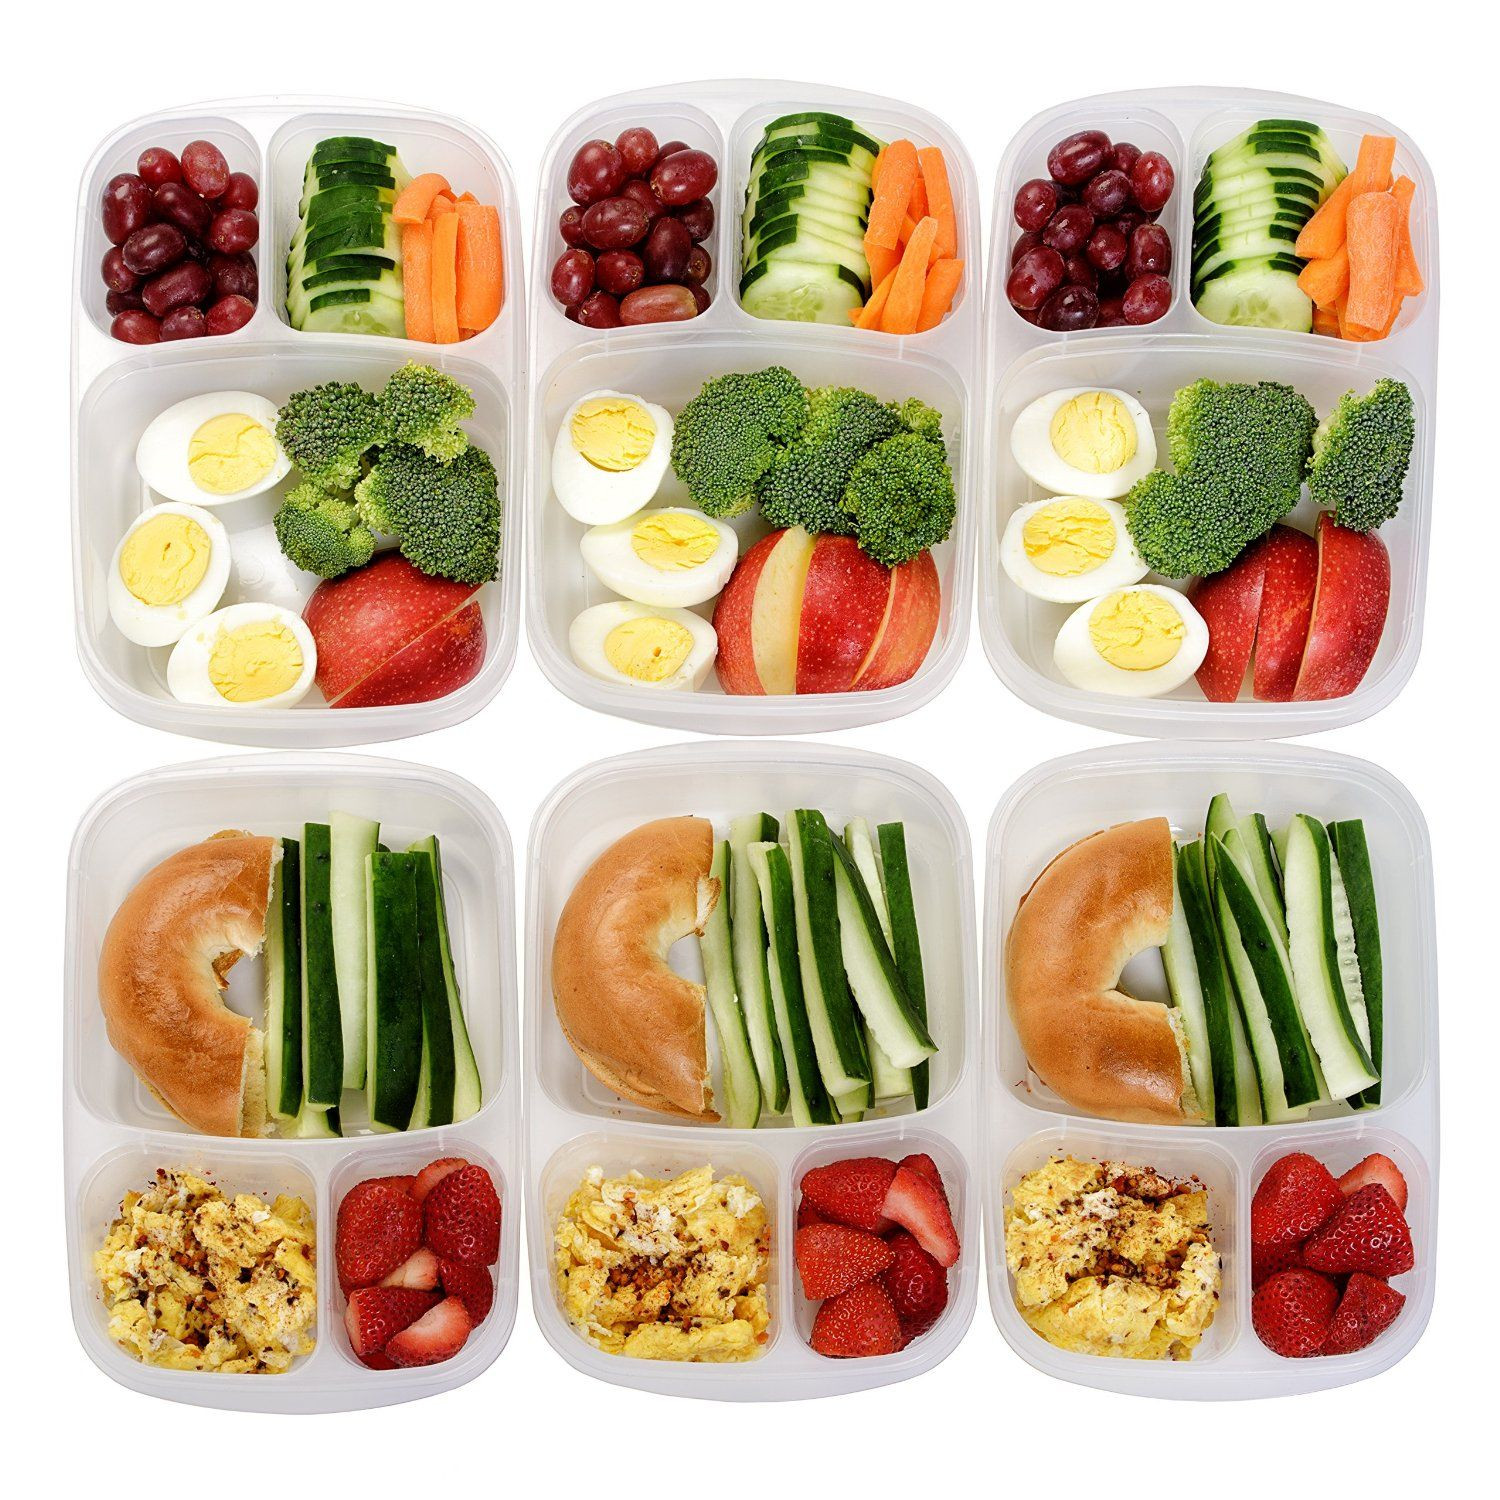 Healthy To Go Lunches  13 Make Ahead Meals and Snacks For Healthy Eating The